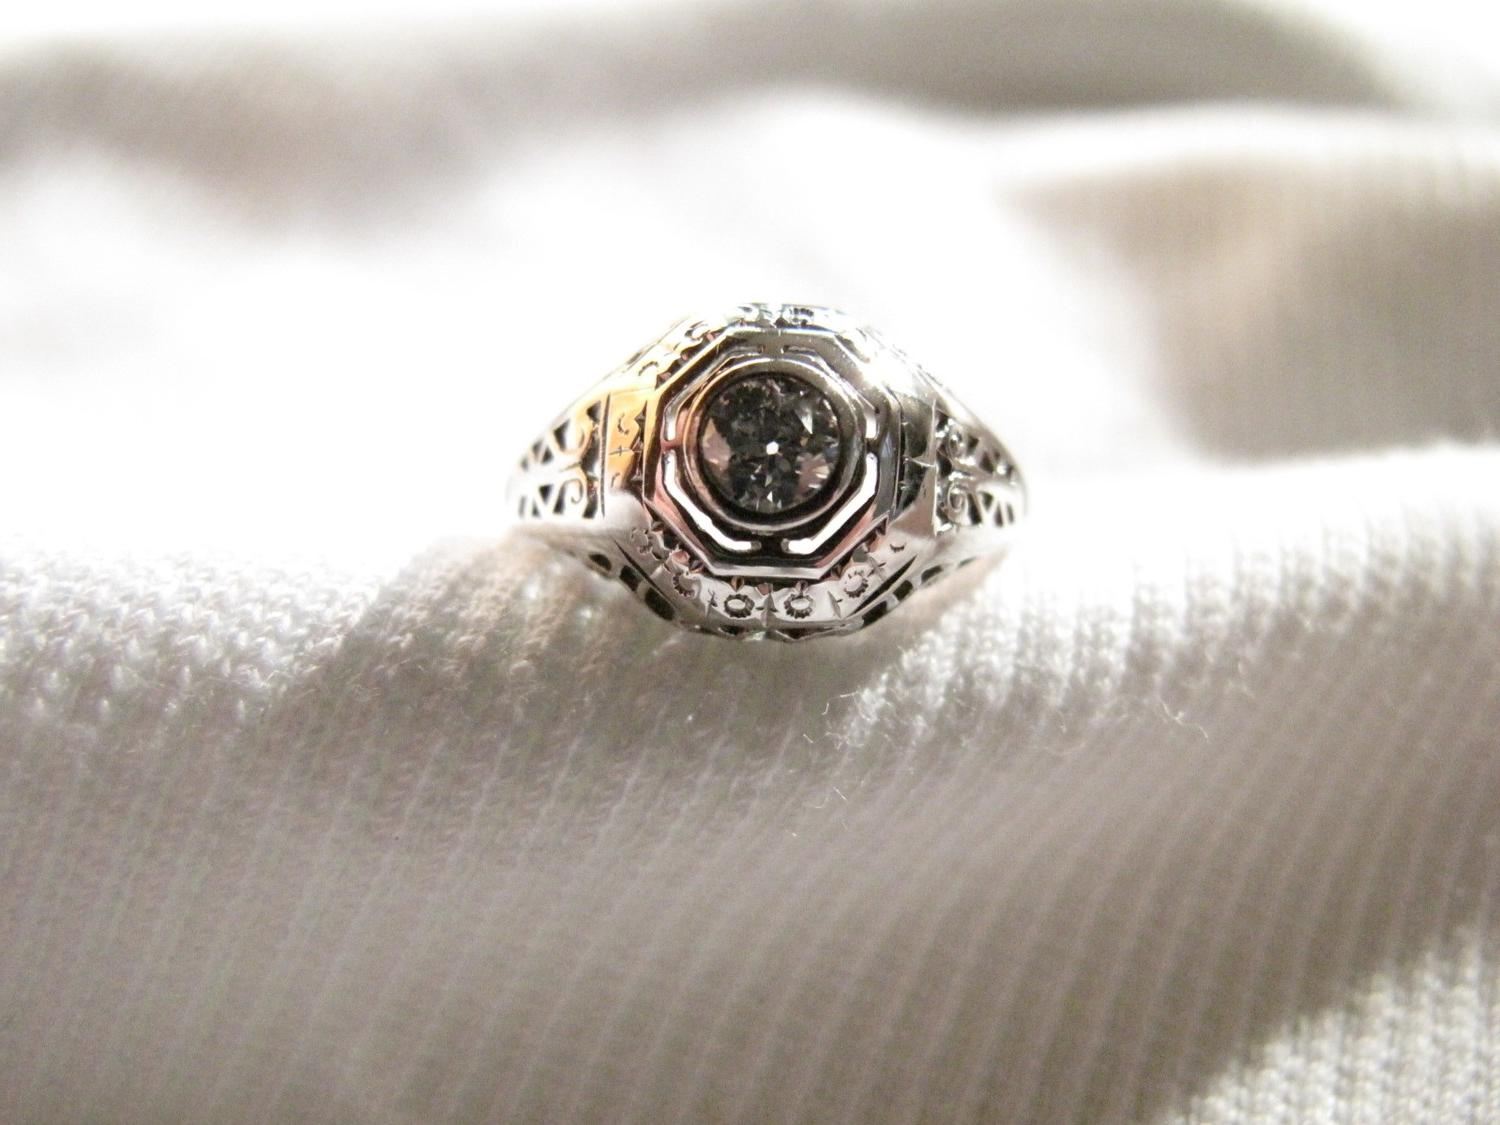 Art Deco Period Diamond and 18K Gold Ring. From RESales